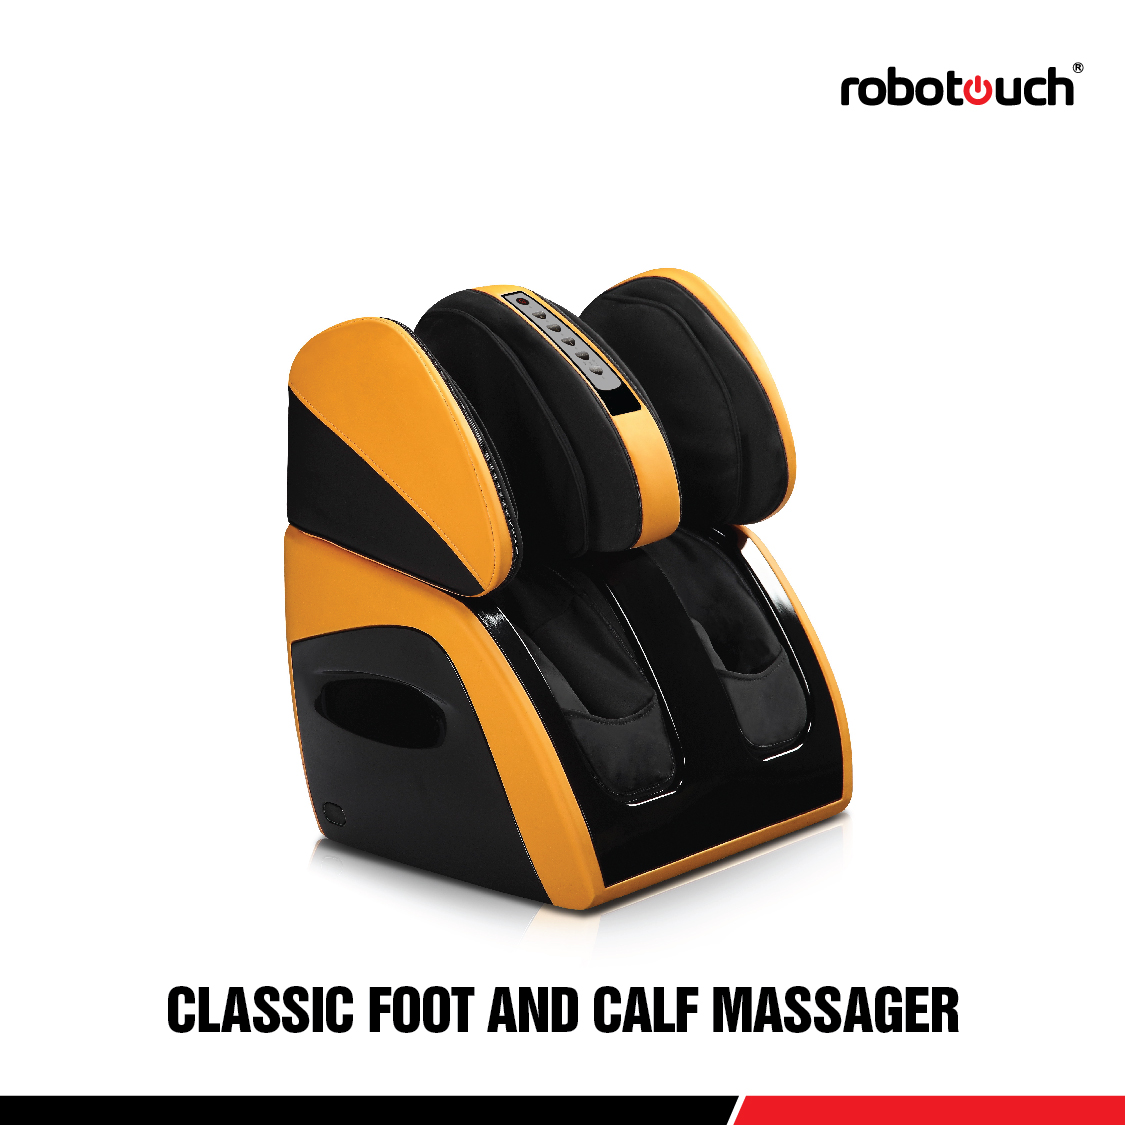 Robotouch Classic Foot & Calf – Shiatsu Relaxing Leg, Calf, Knee, Ankle W/Heat Therapy For Calves Feet-Yellow-876